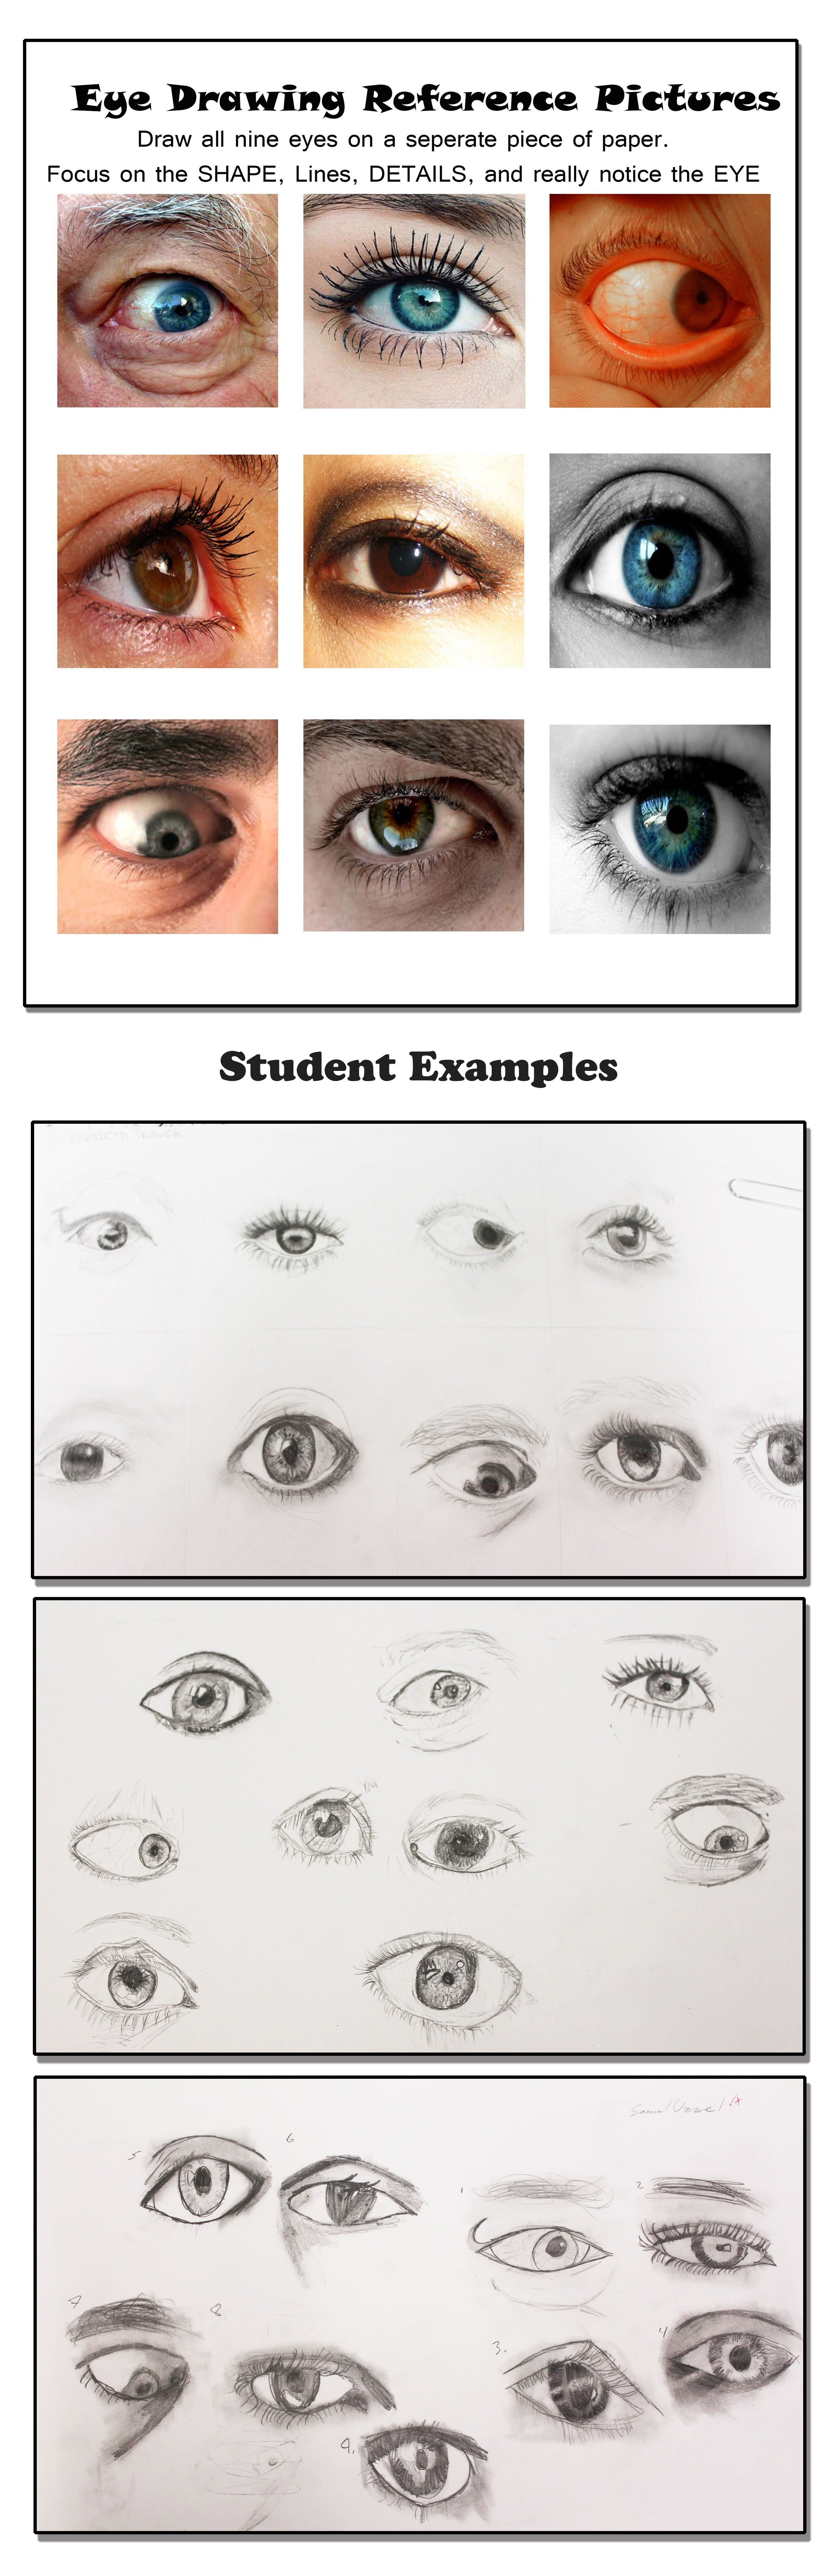 Art 1 Eye Drawings Learning To Draw The Eye Worksheet